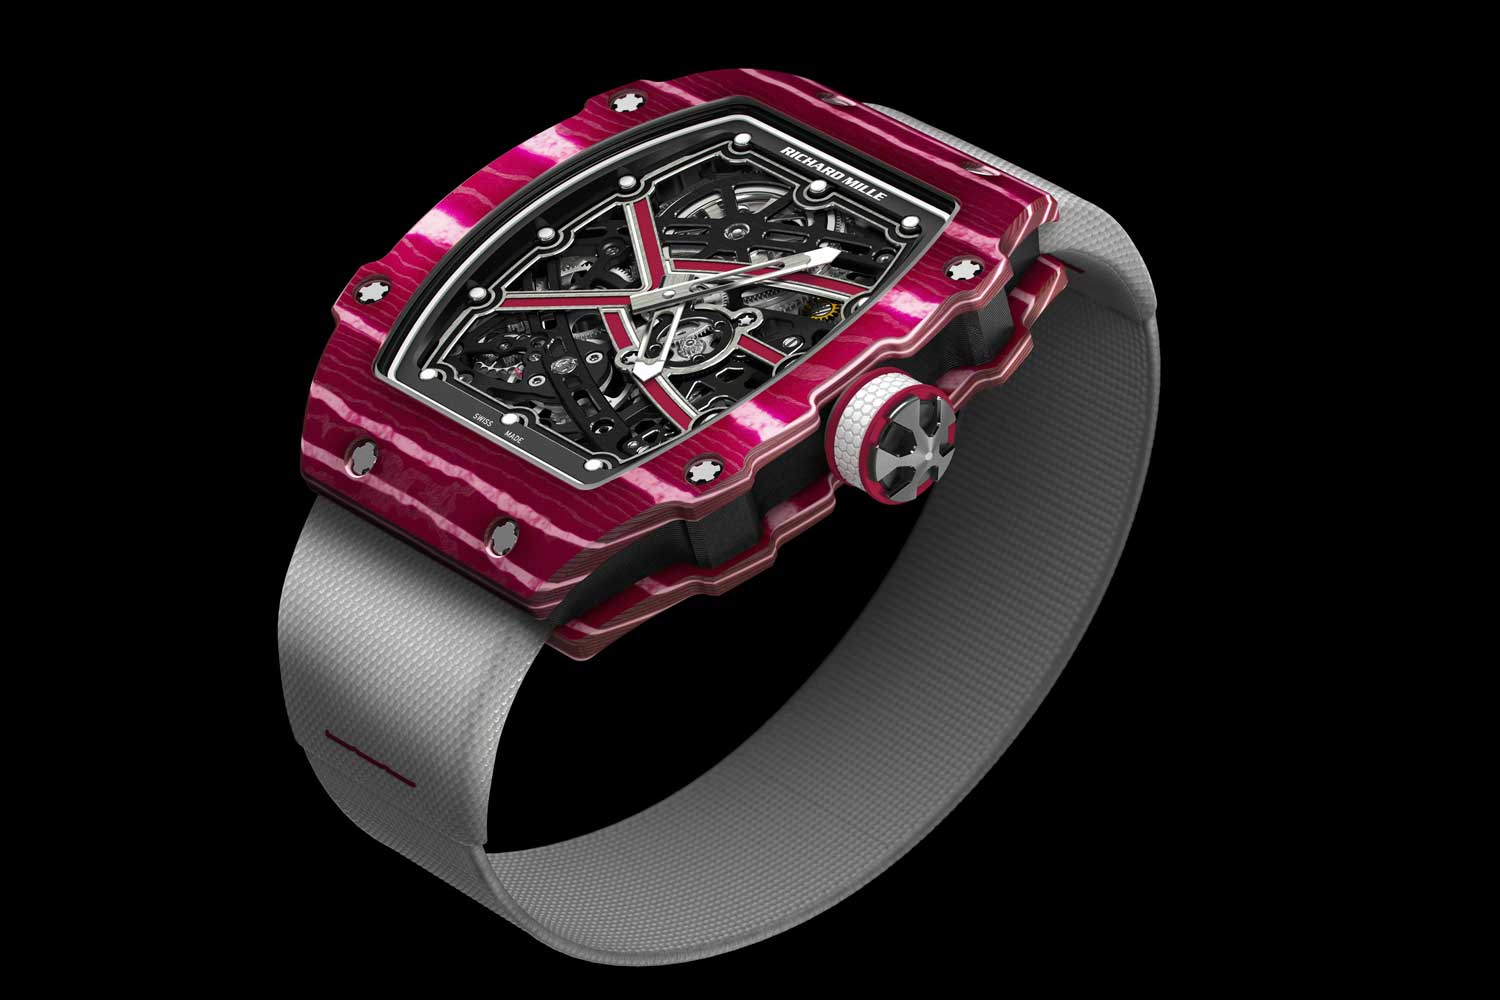 At 38.7mm wide and 7.8mm in height, the RM 67-02 is one of the first from Richard Mille to revisit classic dimensions